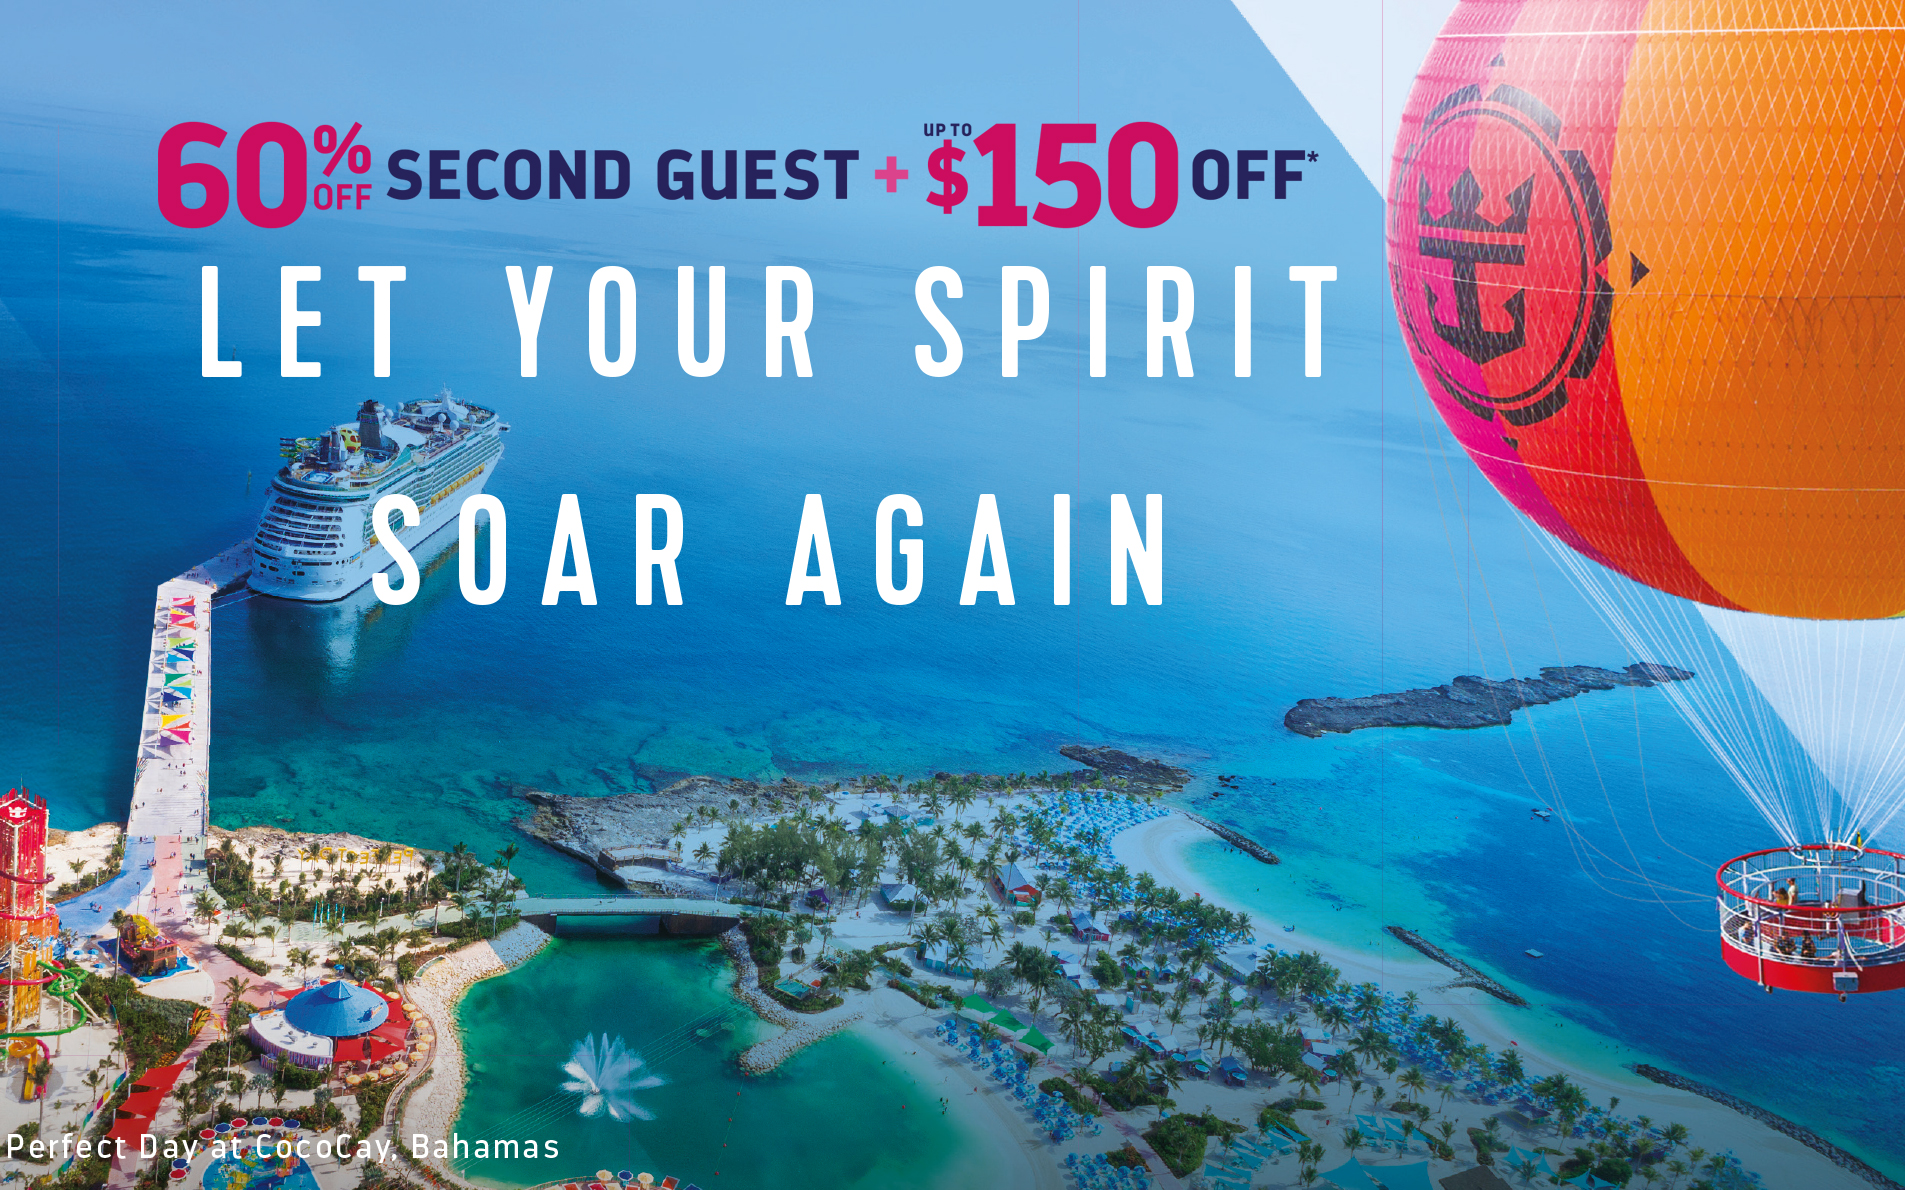 Get 60% Off Second Guest* + up to150 Off* with Royal Caribbean